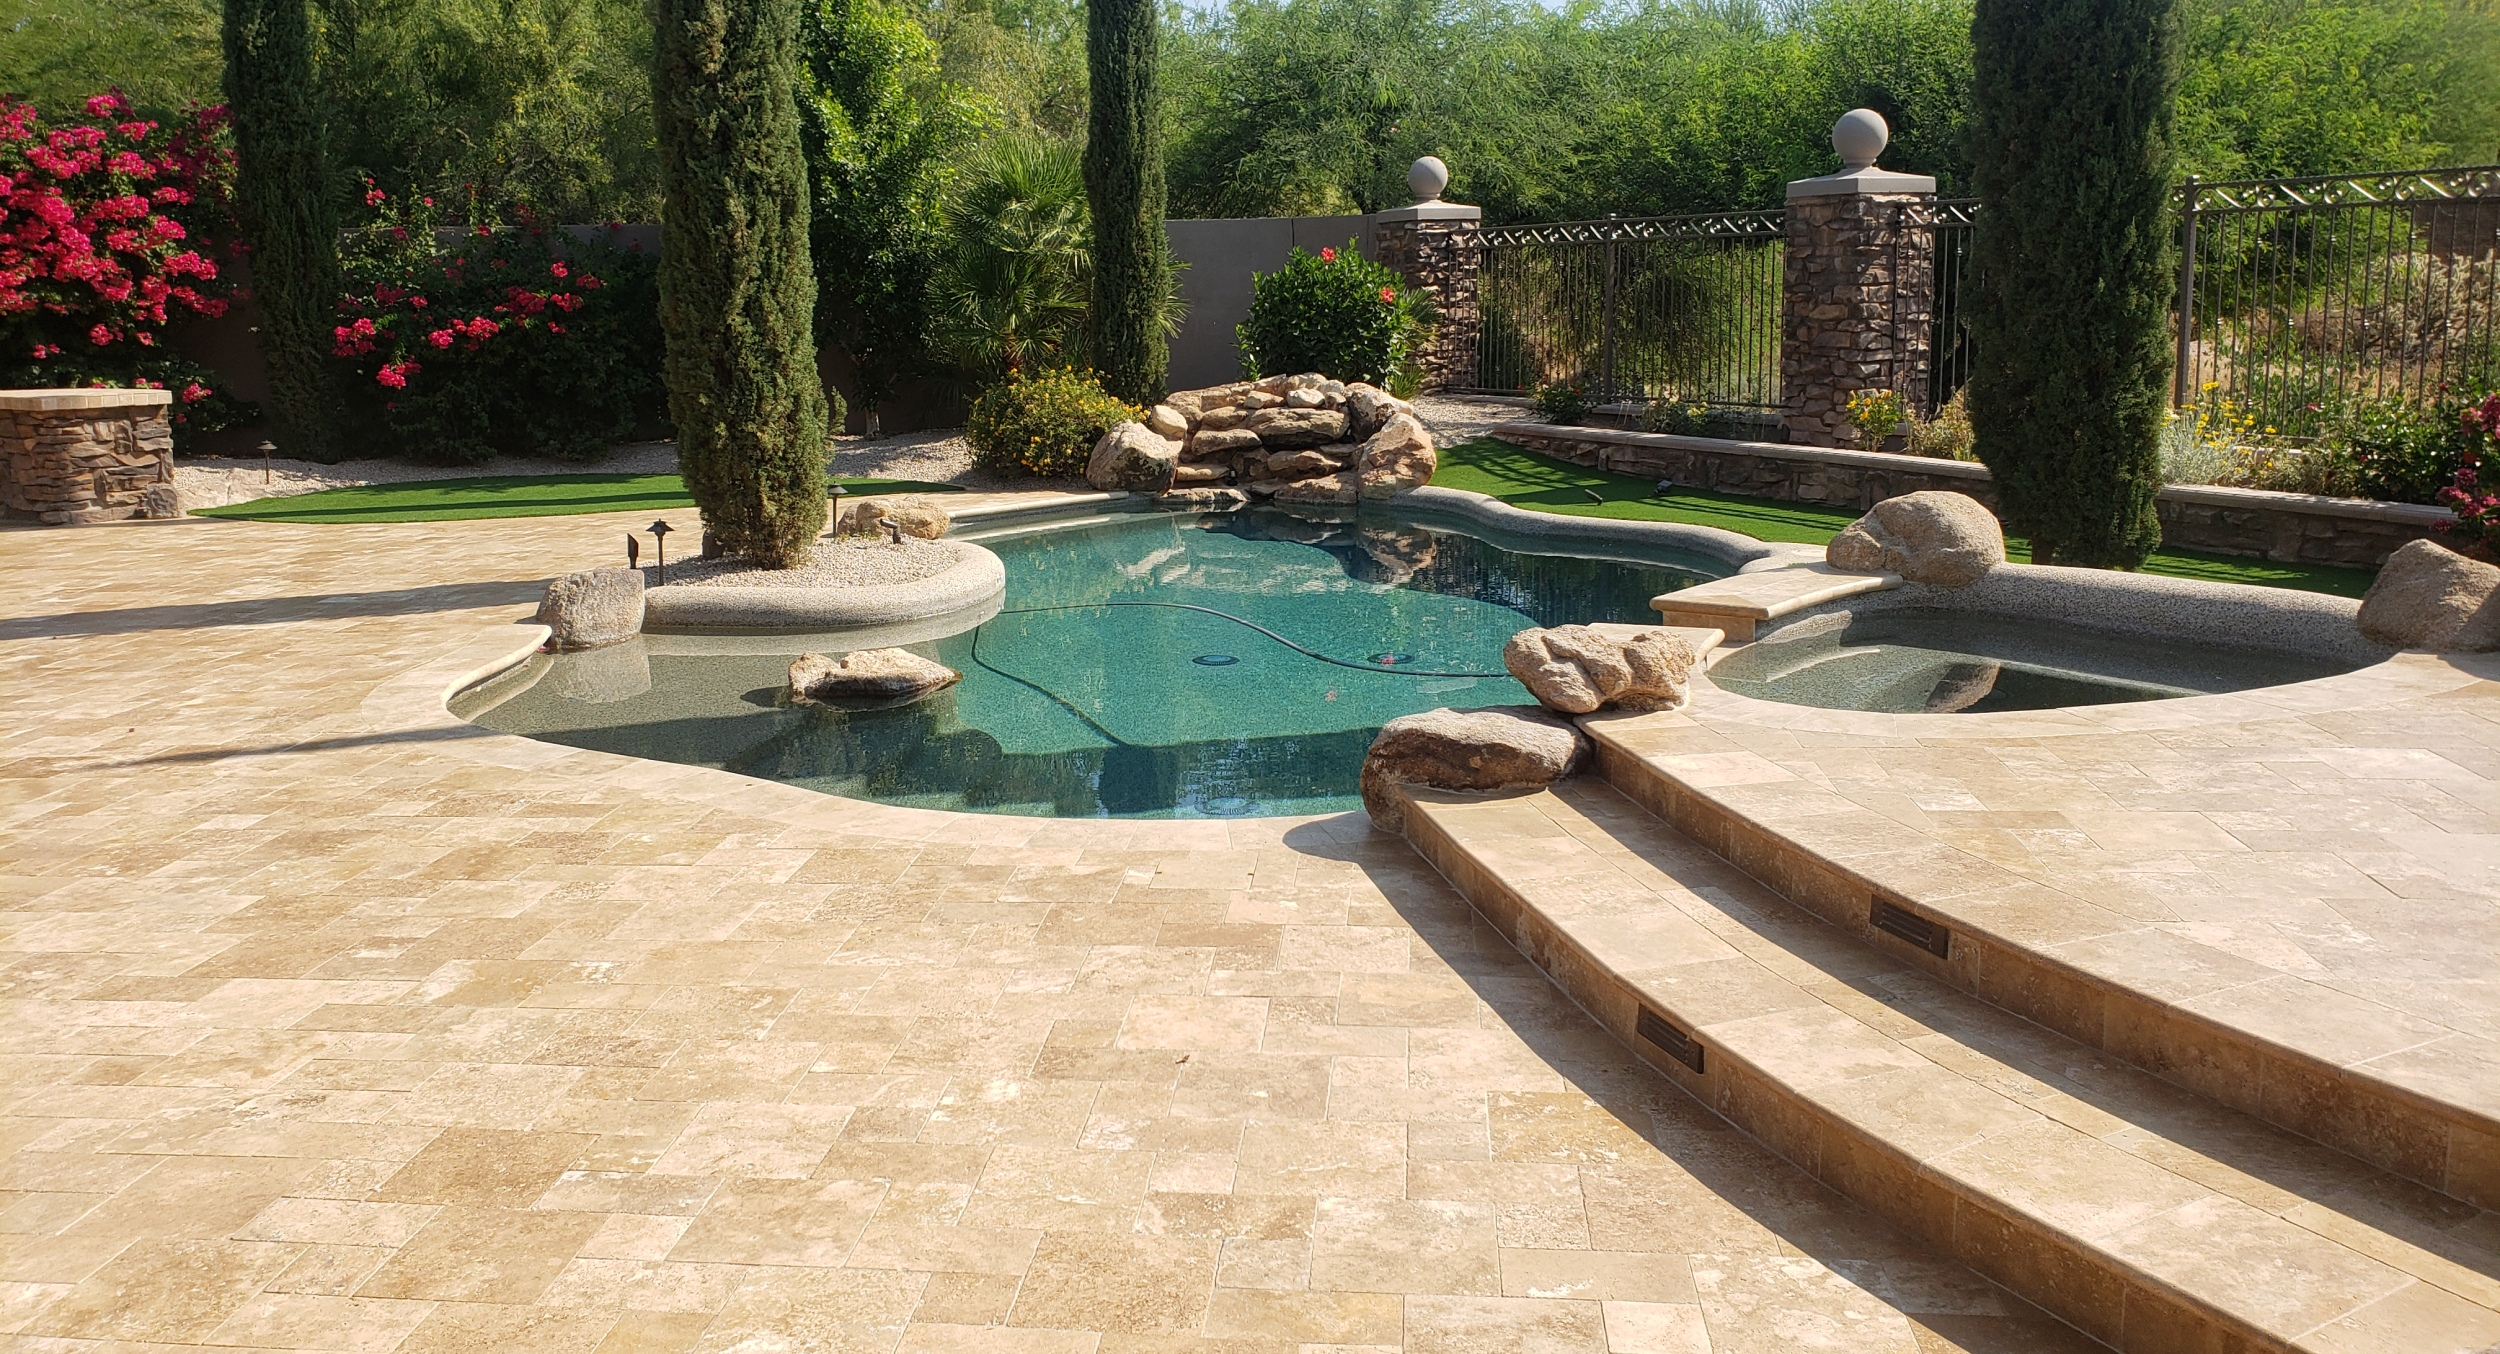 Interested in replacing old kool decking with travertine? Pool deck remodel clients in Scottsdale took their patio and pool deck from drab to fab.